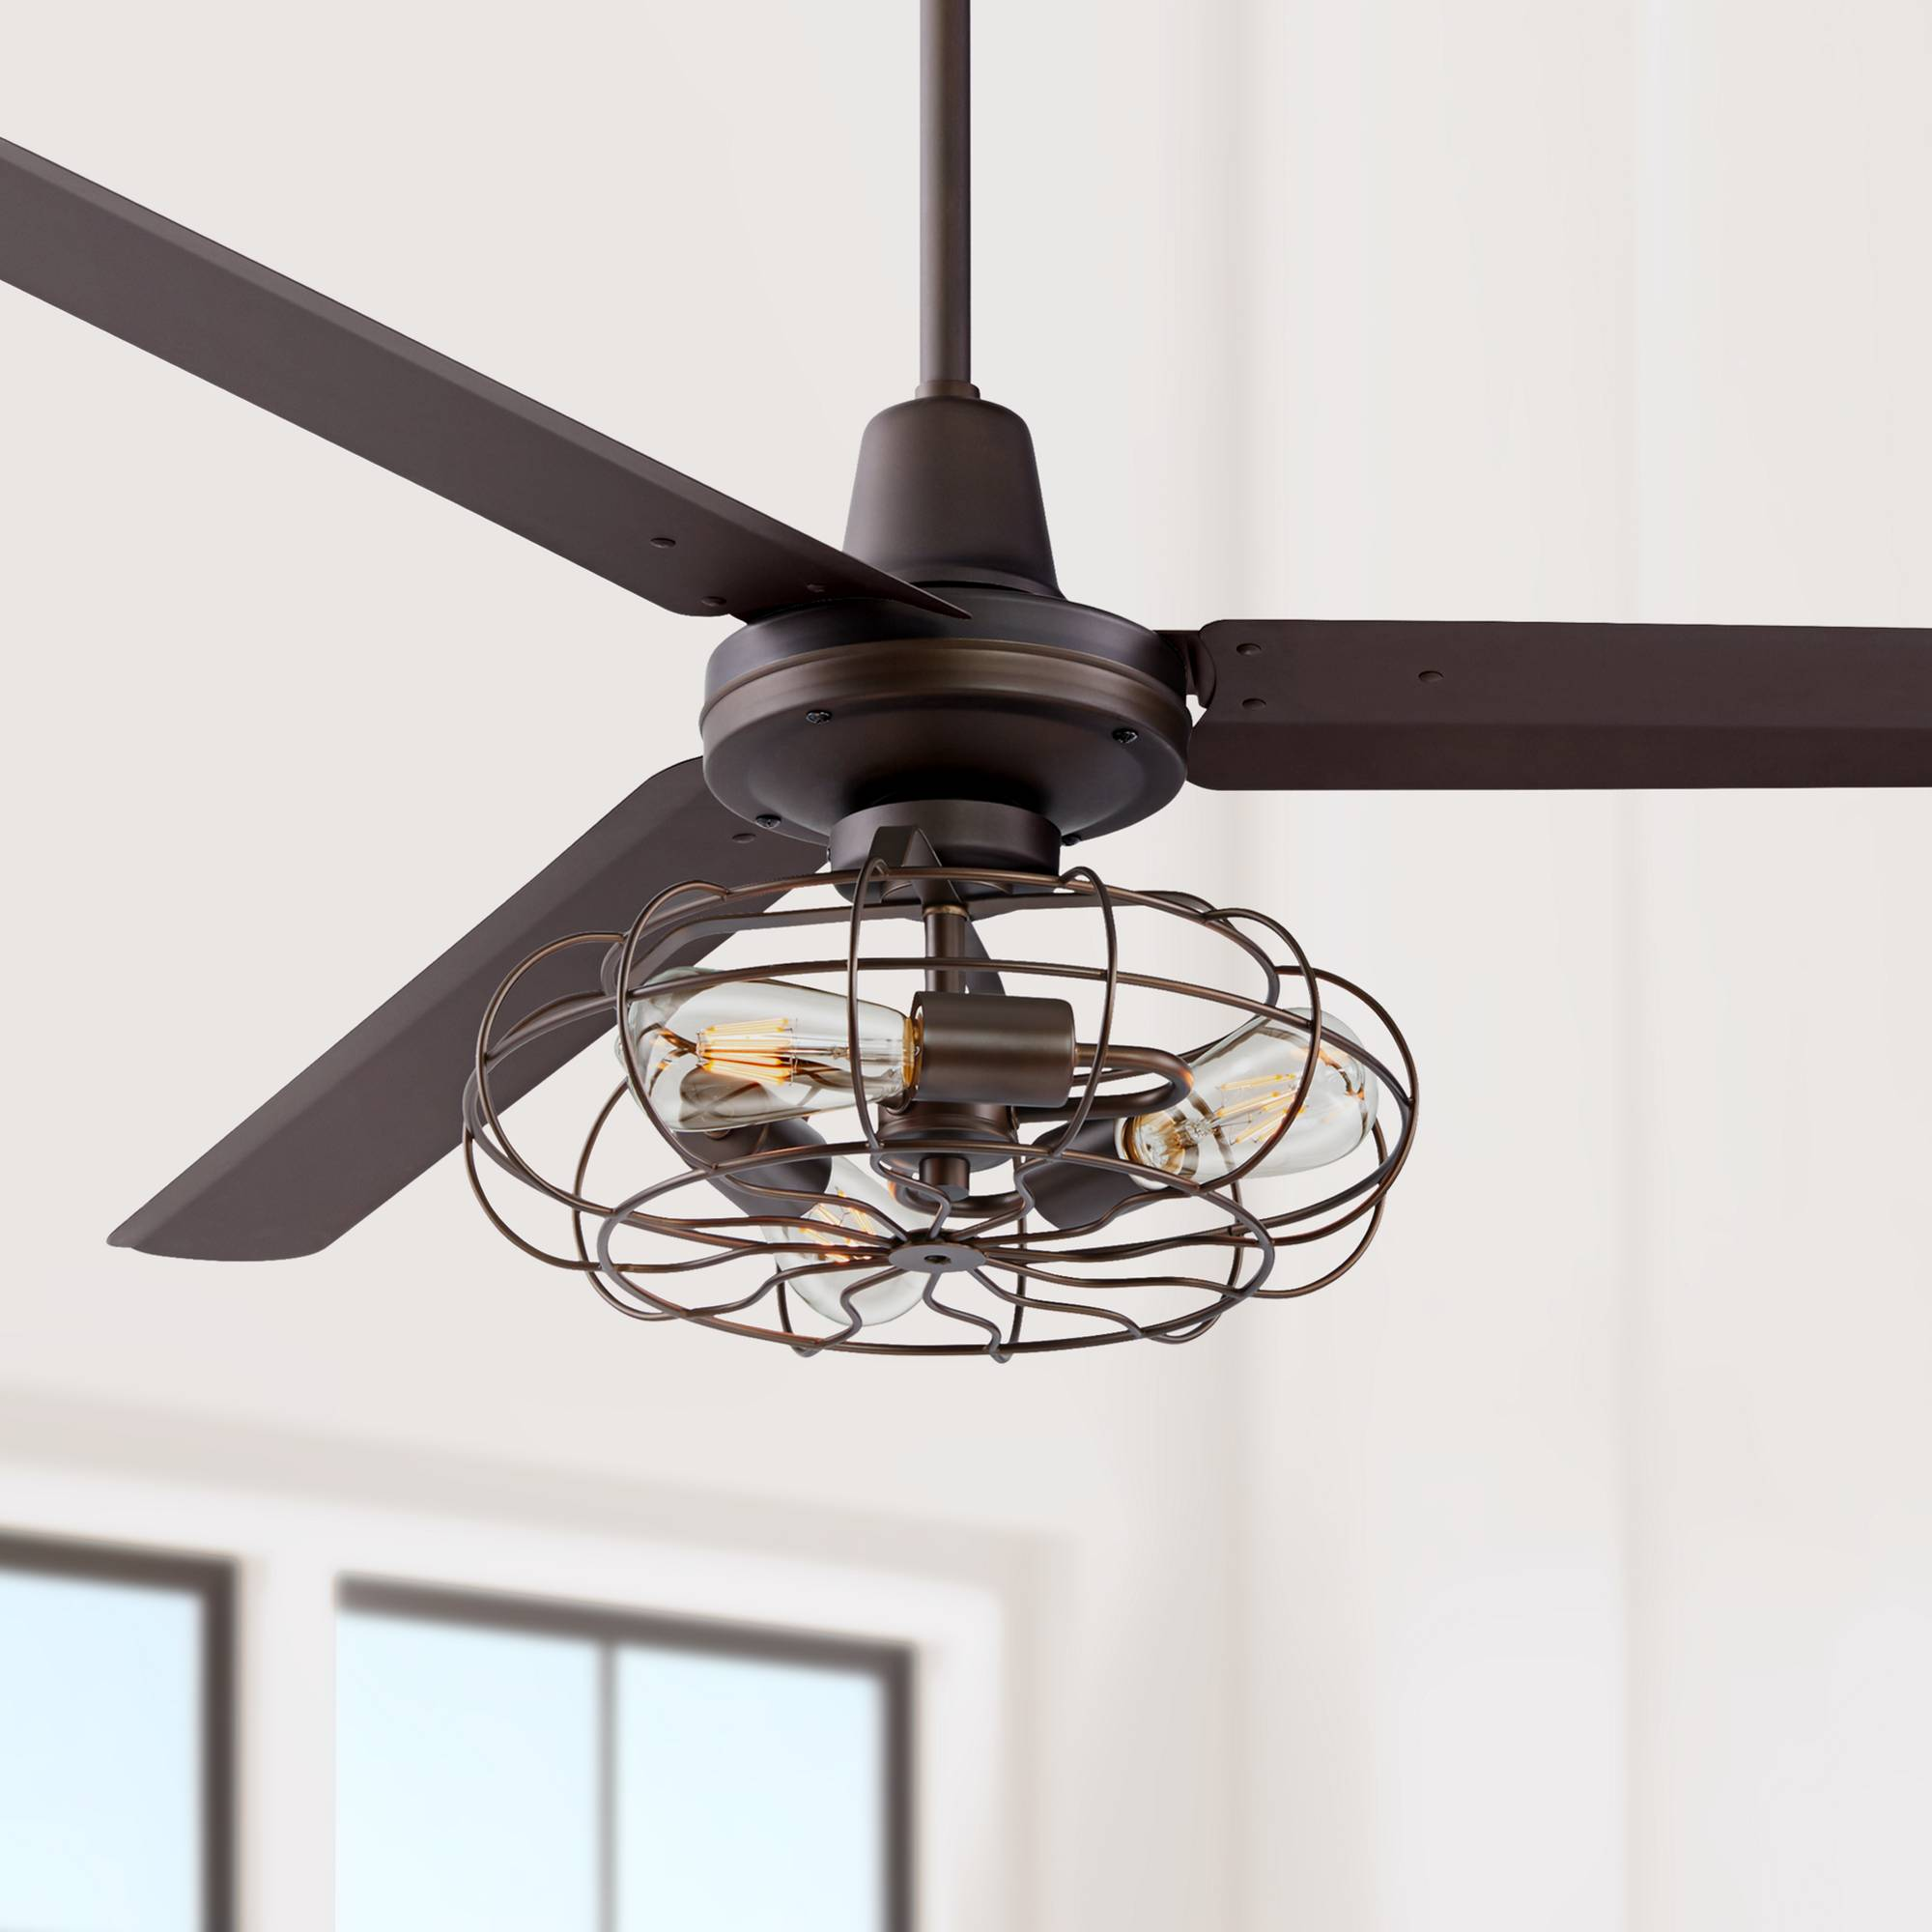 Details About 60 Outdoor Ceiling Fan With Light Led Bronze Damp Rated Patio Porch